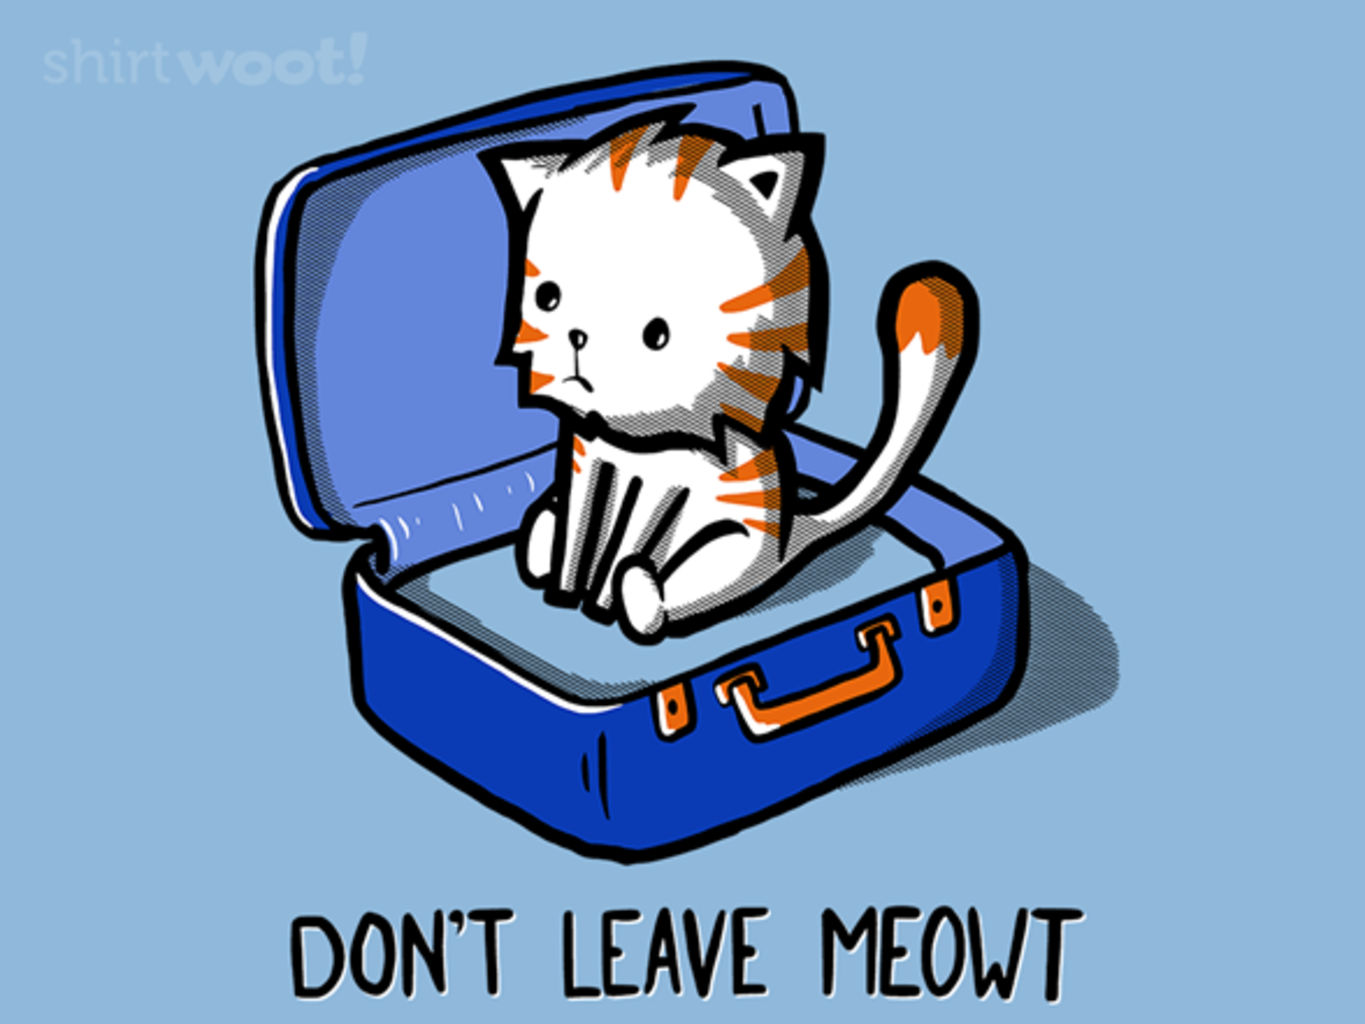 Woot!: Don't Leave Meowt